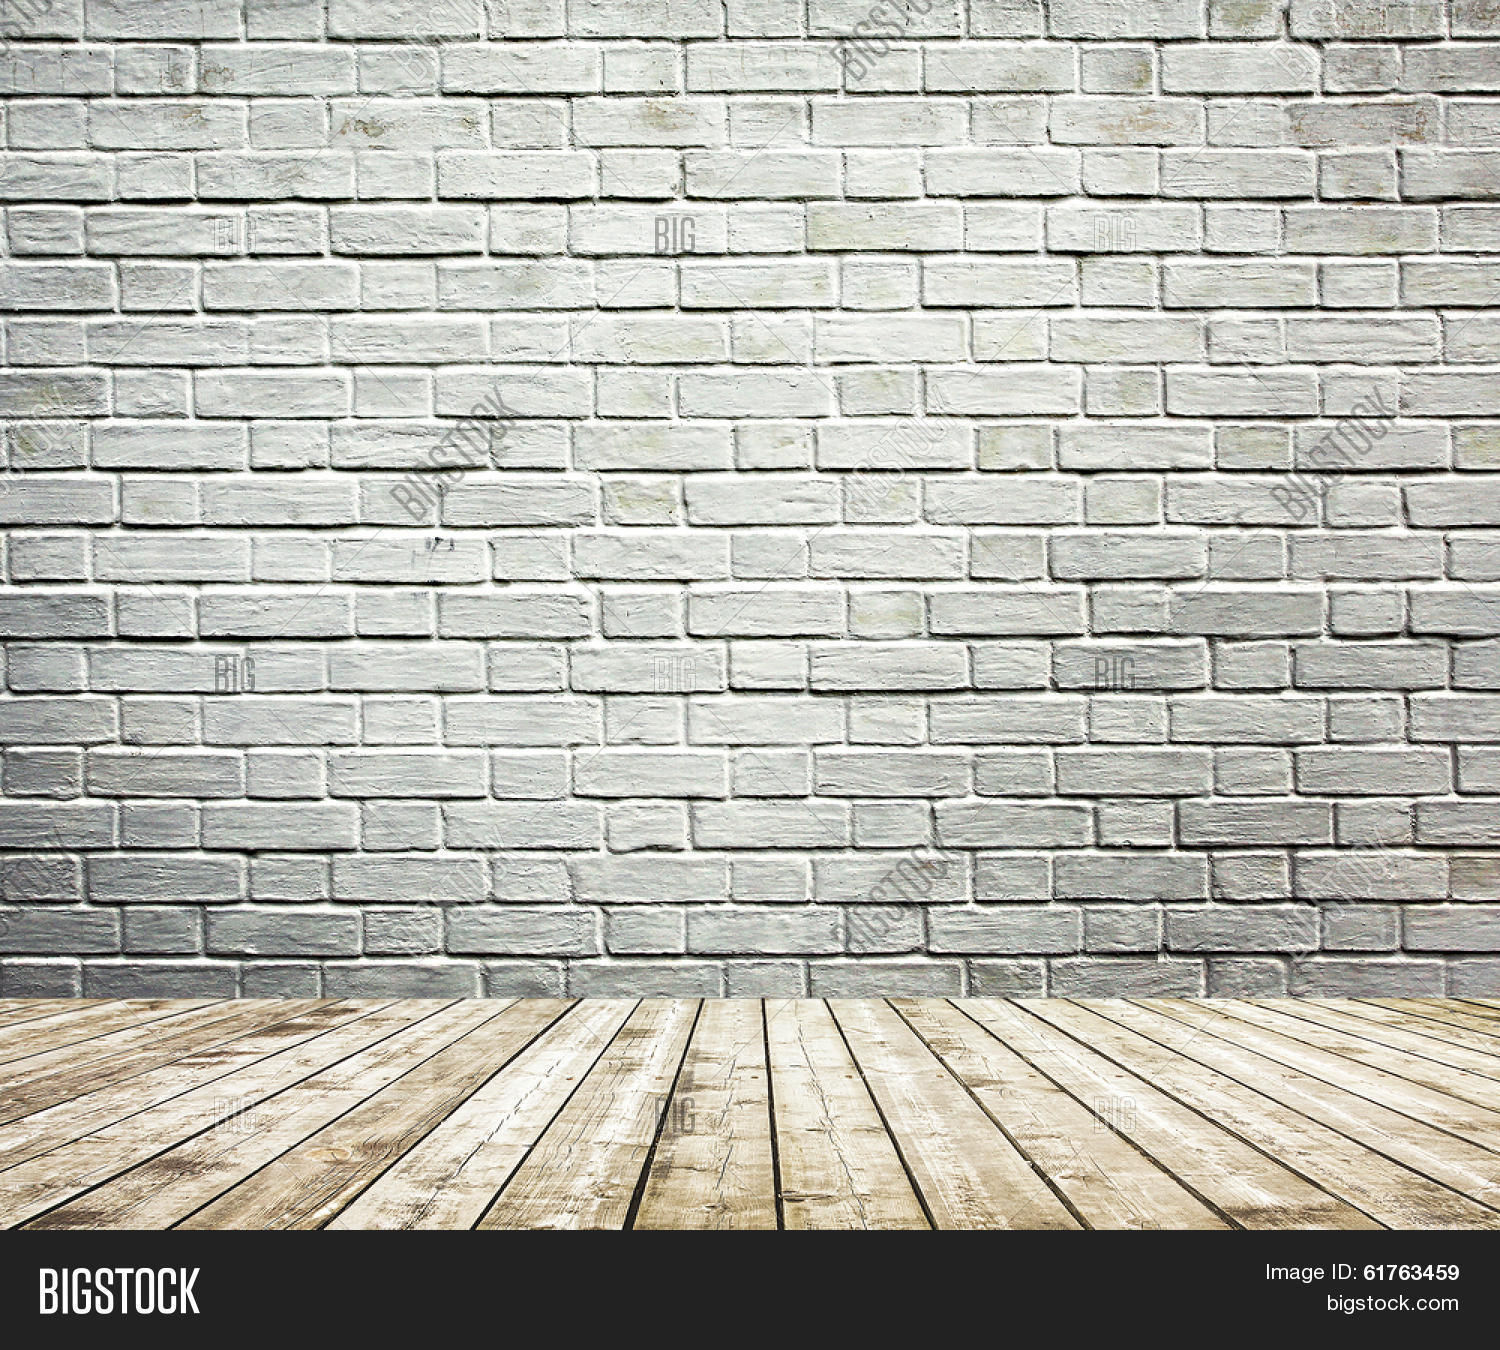 Background Age Grungy Image Photo Free Trial Bigstock